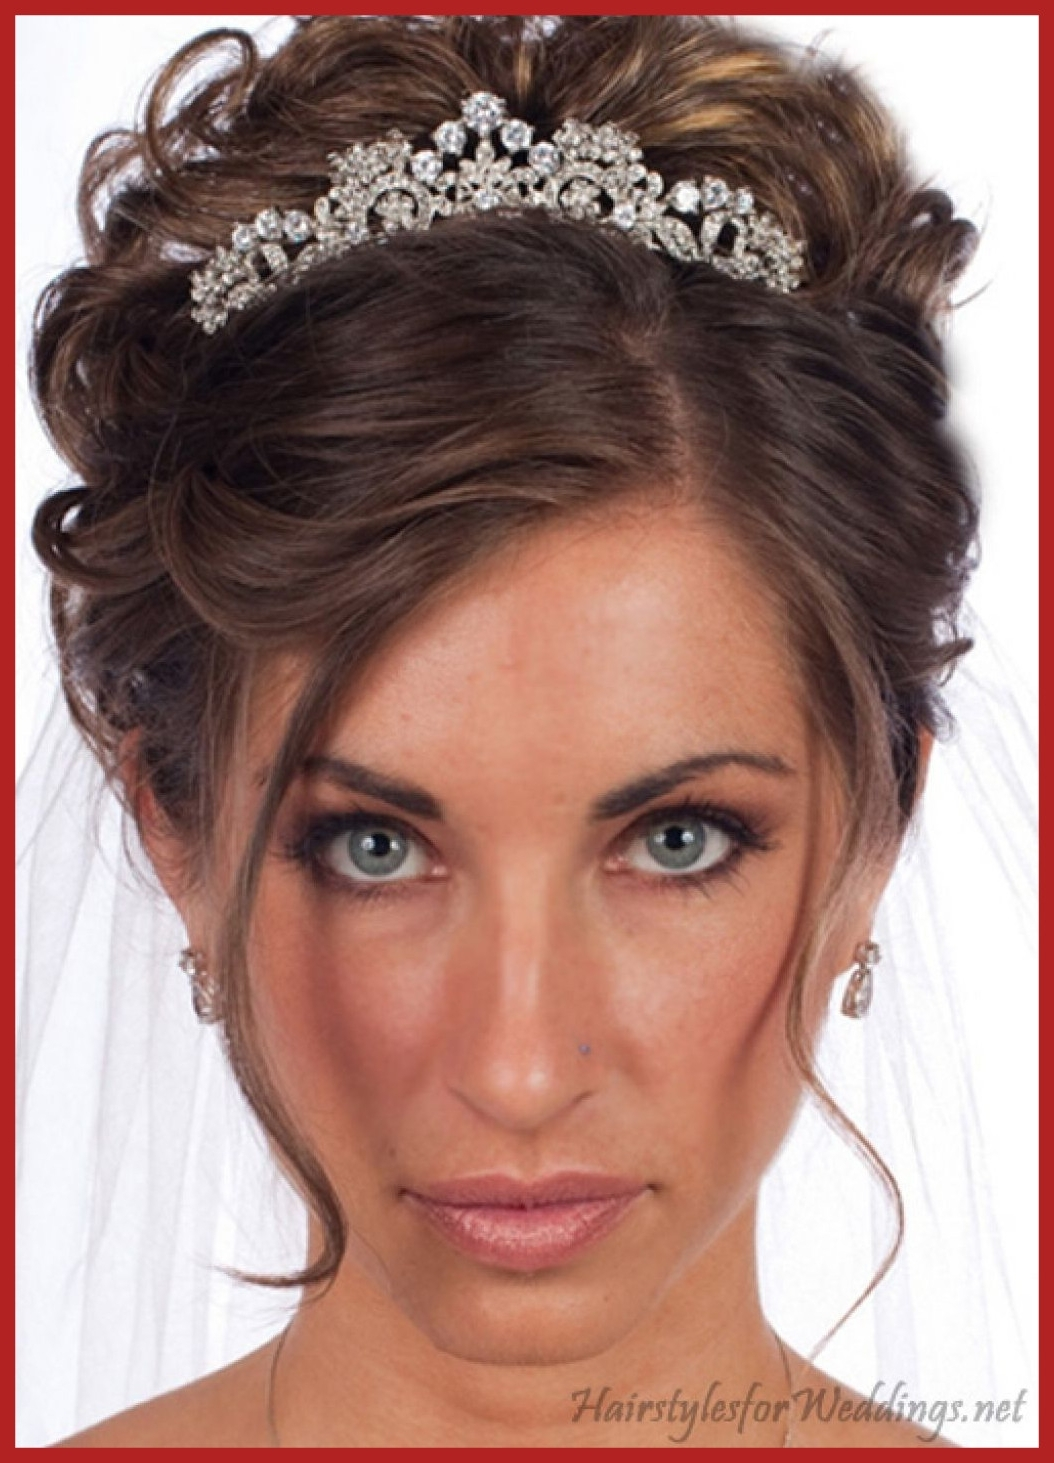 Most Current Wedding Updos For Long Hair With Tiara Throughout Fascinating Wedding Hair Updo With Tiara Popular Long Hairstyle Idea (View 9 of 15)